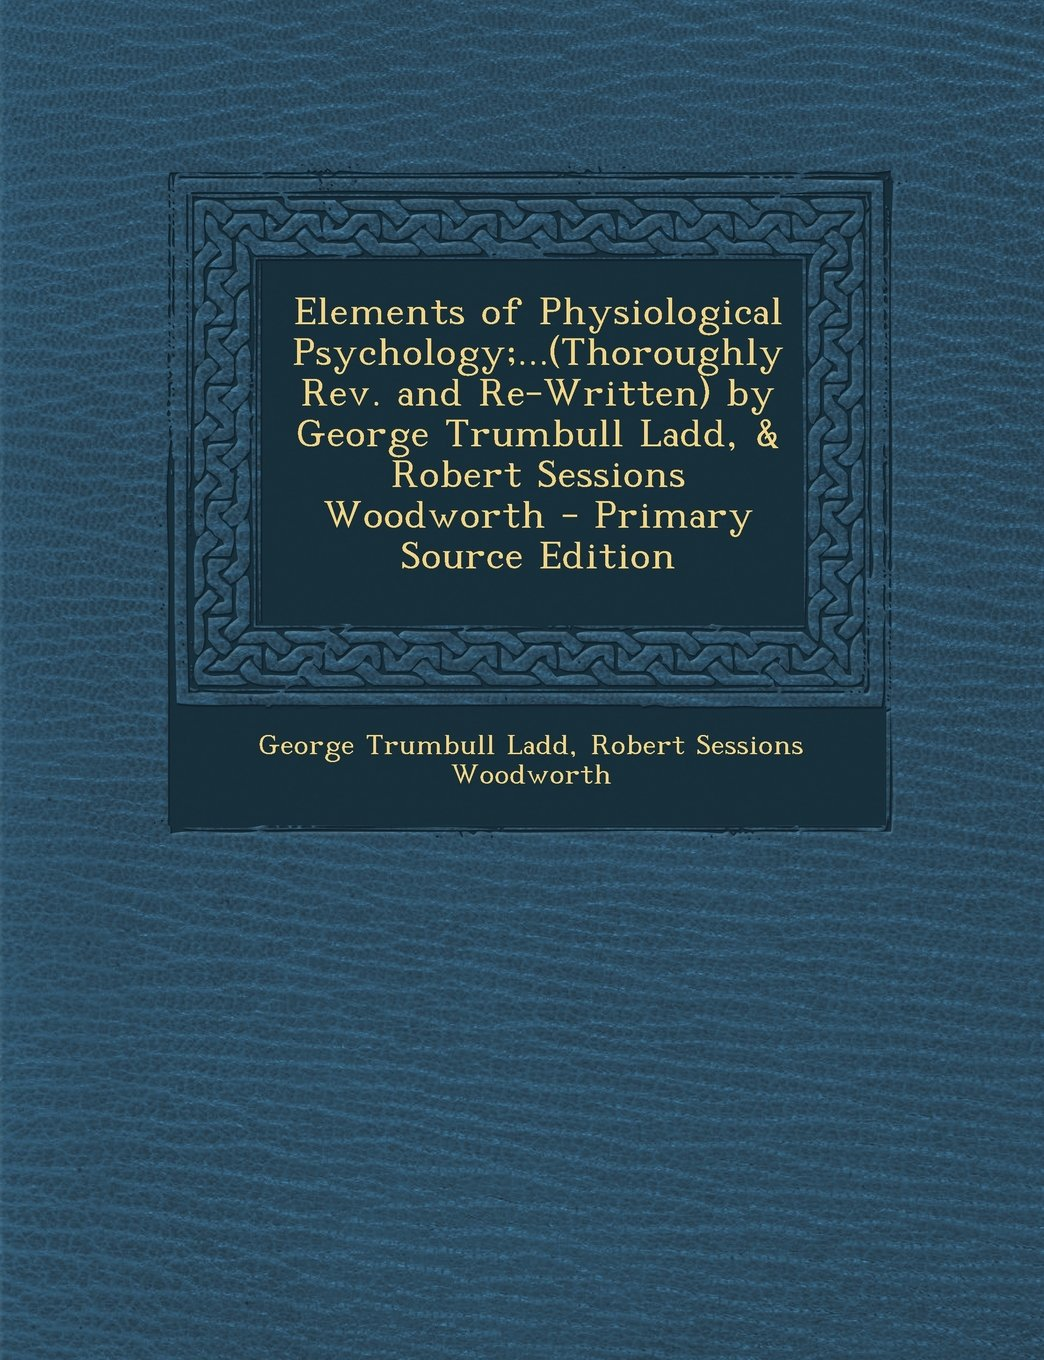 Elements of Physiological Psychology;...(Thoroughly REV. and Re-Written) by George Trumbull Ladd, & Robert Sessions Woodworth - Primary Source Edition PDF